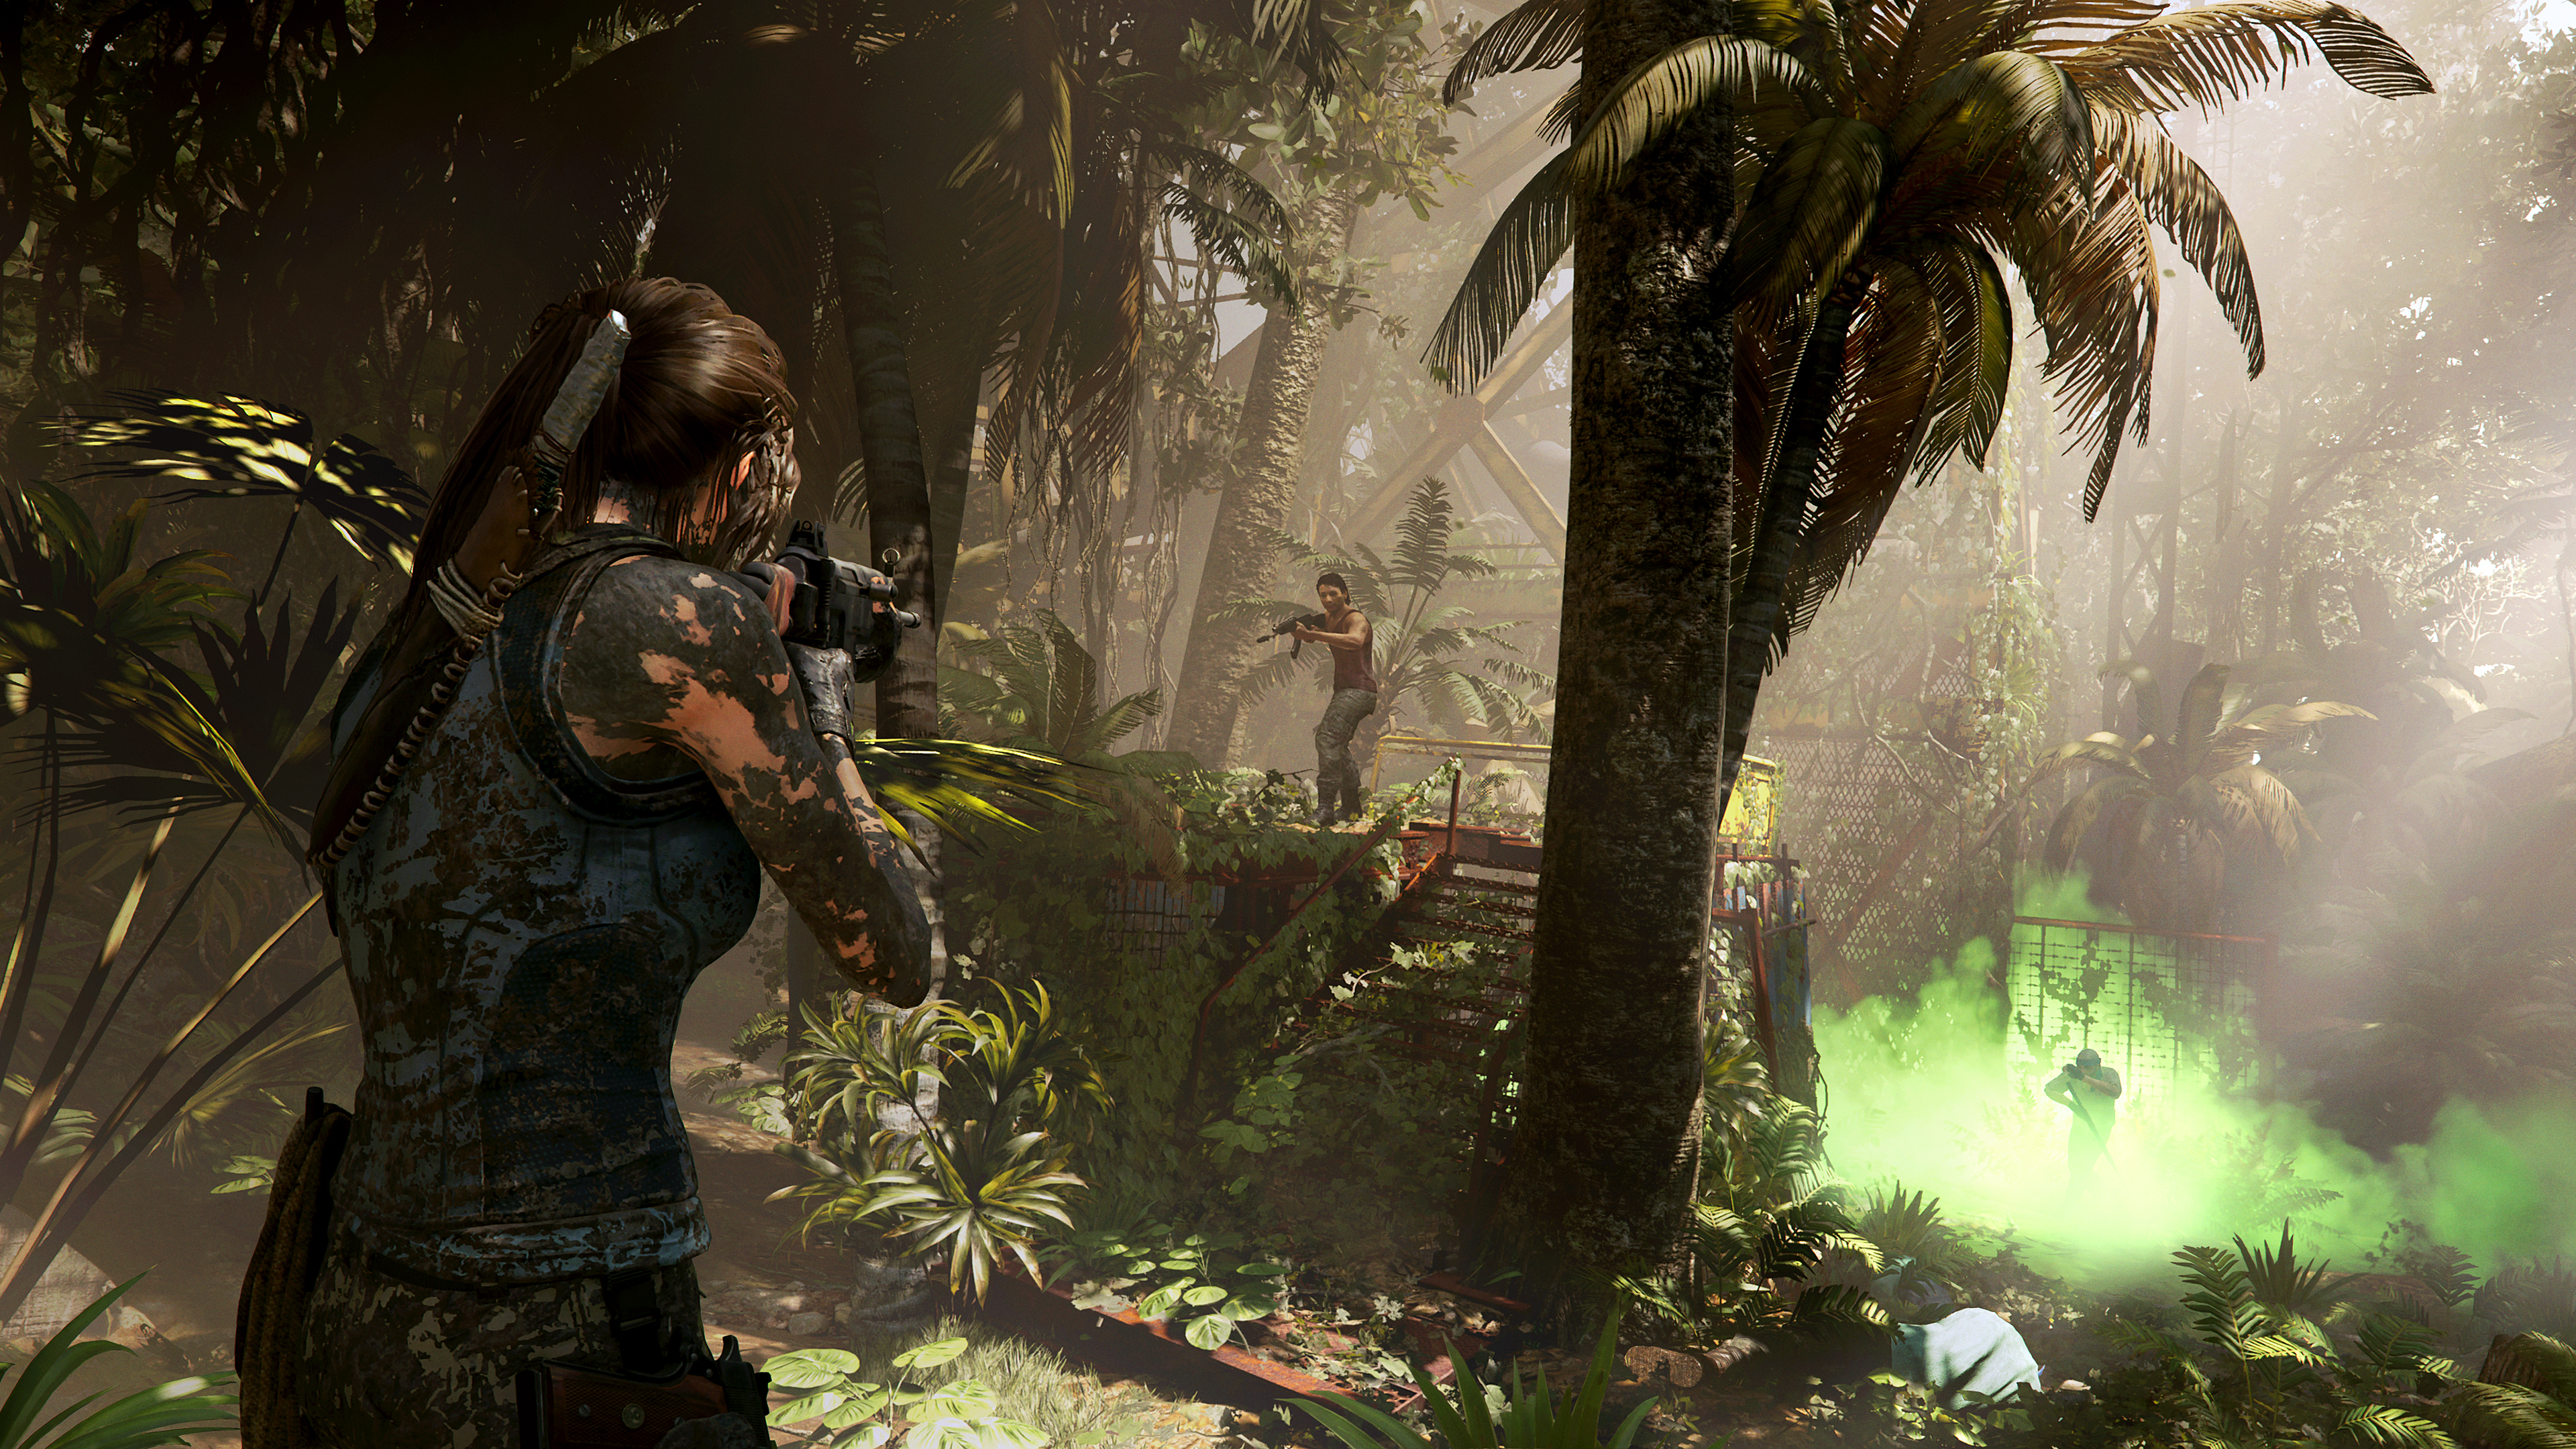 Gaming Shadow Of The Tomb Raider Dx12 The Amd